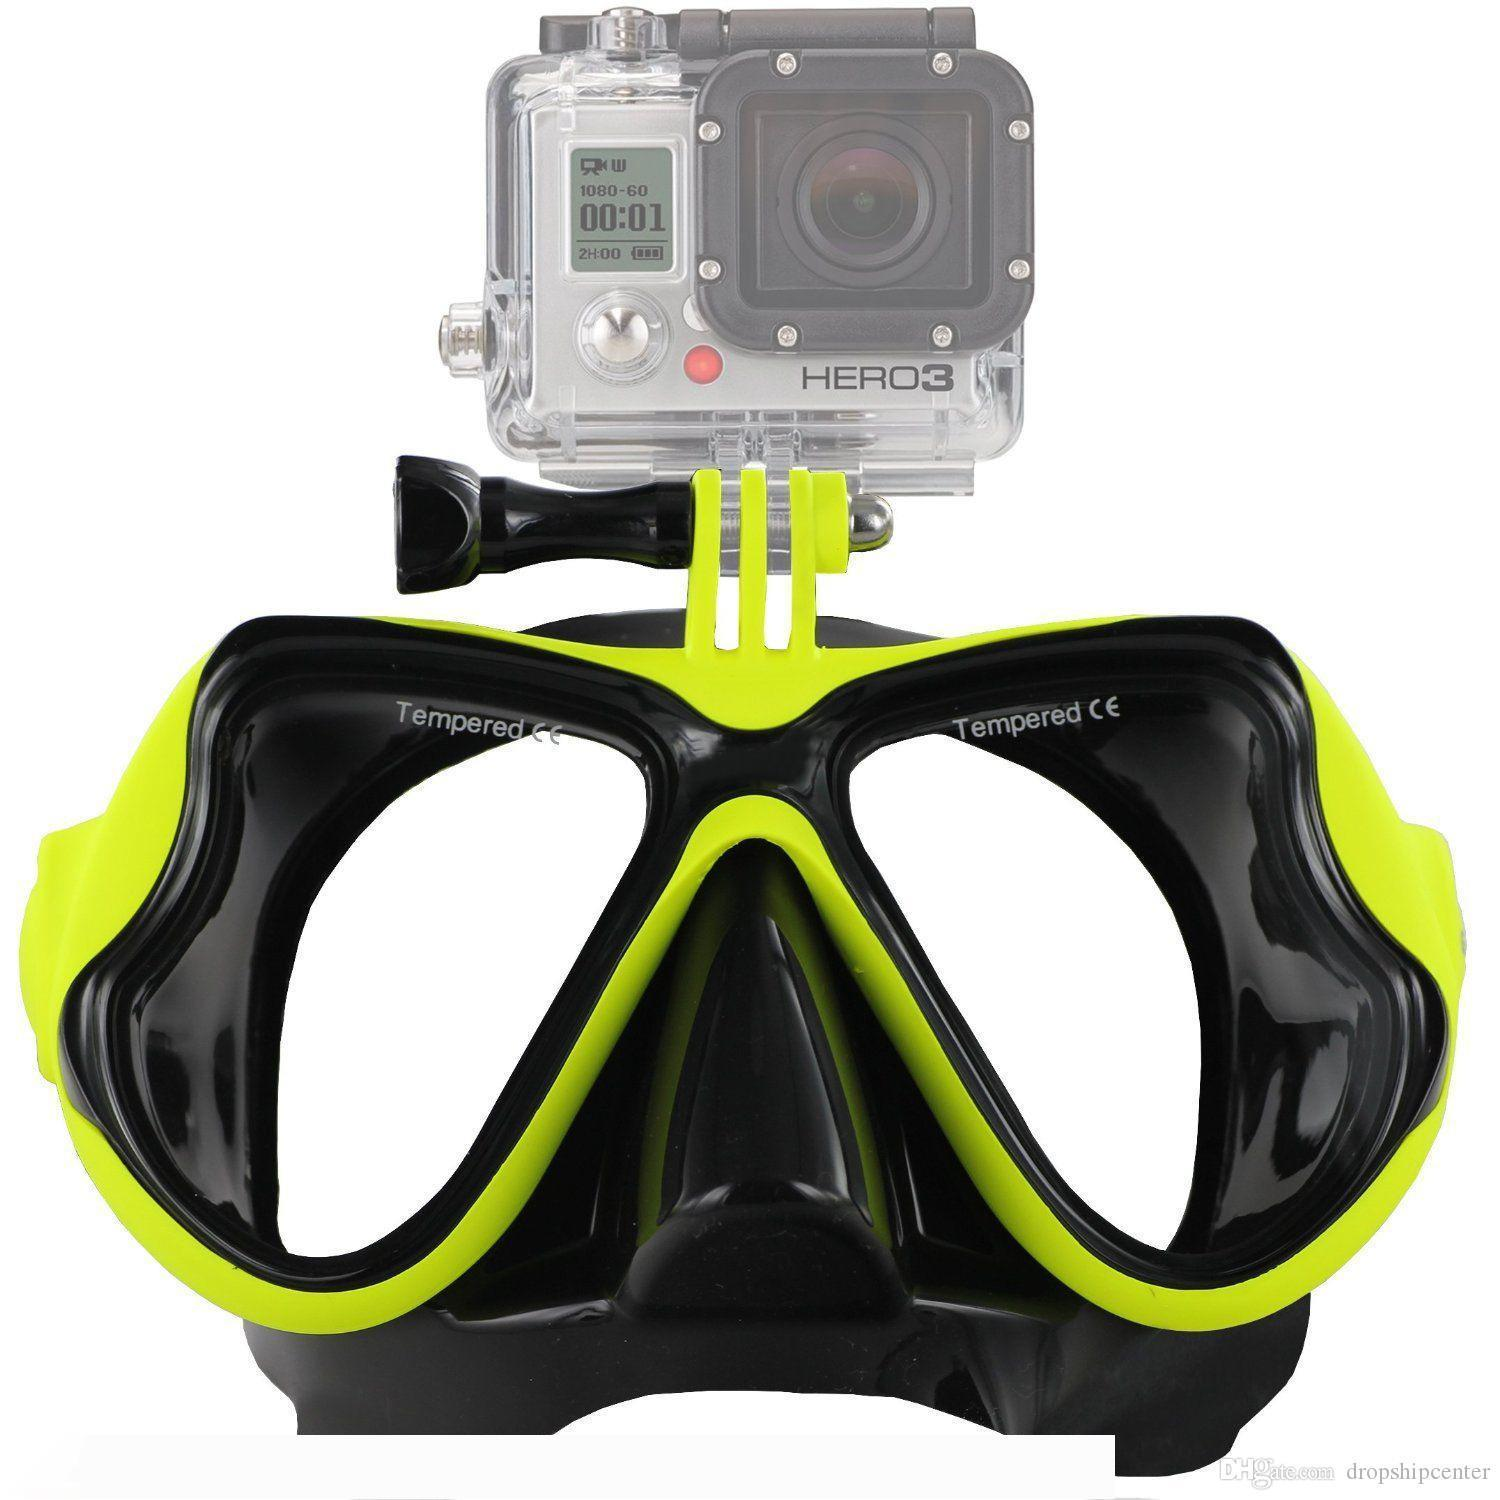 Scuba Diving Mask Goggles Swimming Snorkeling Anti Fog Coated Tempered Glass 100% Leak-Proof Design Compatible GoPro Hero Water Sport